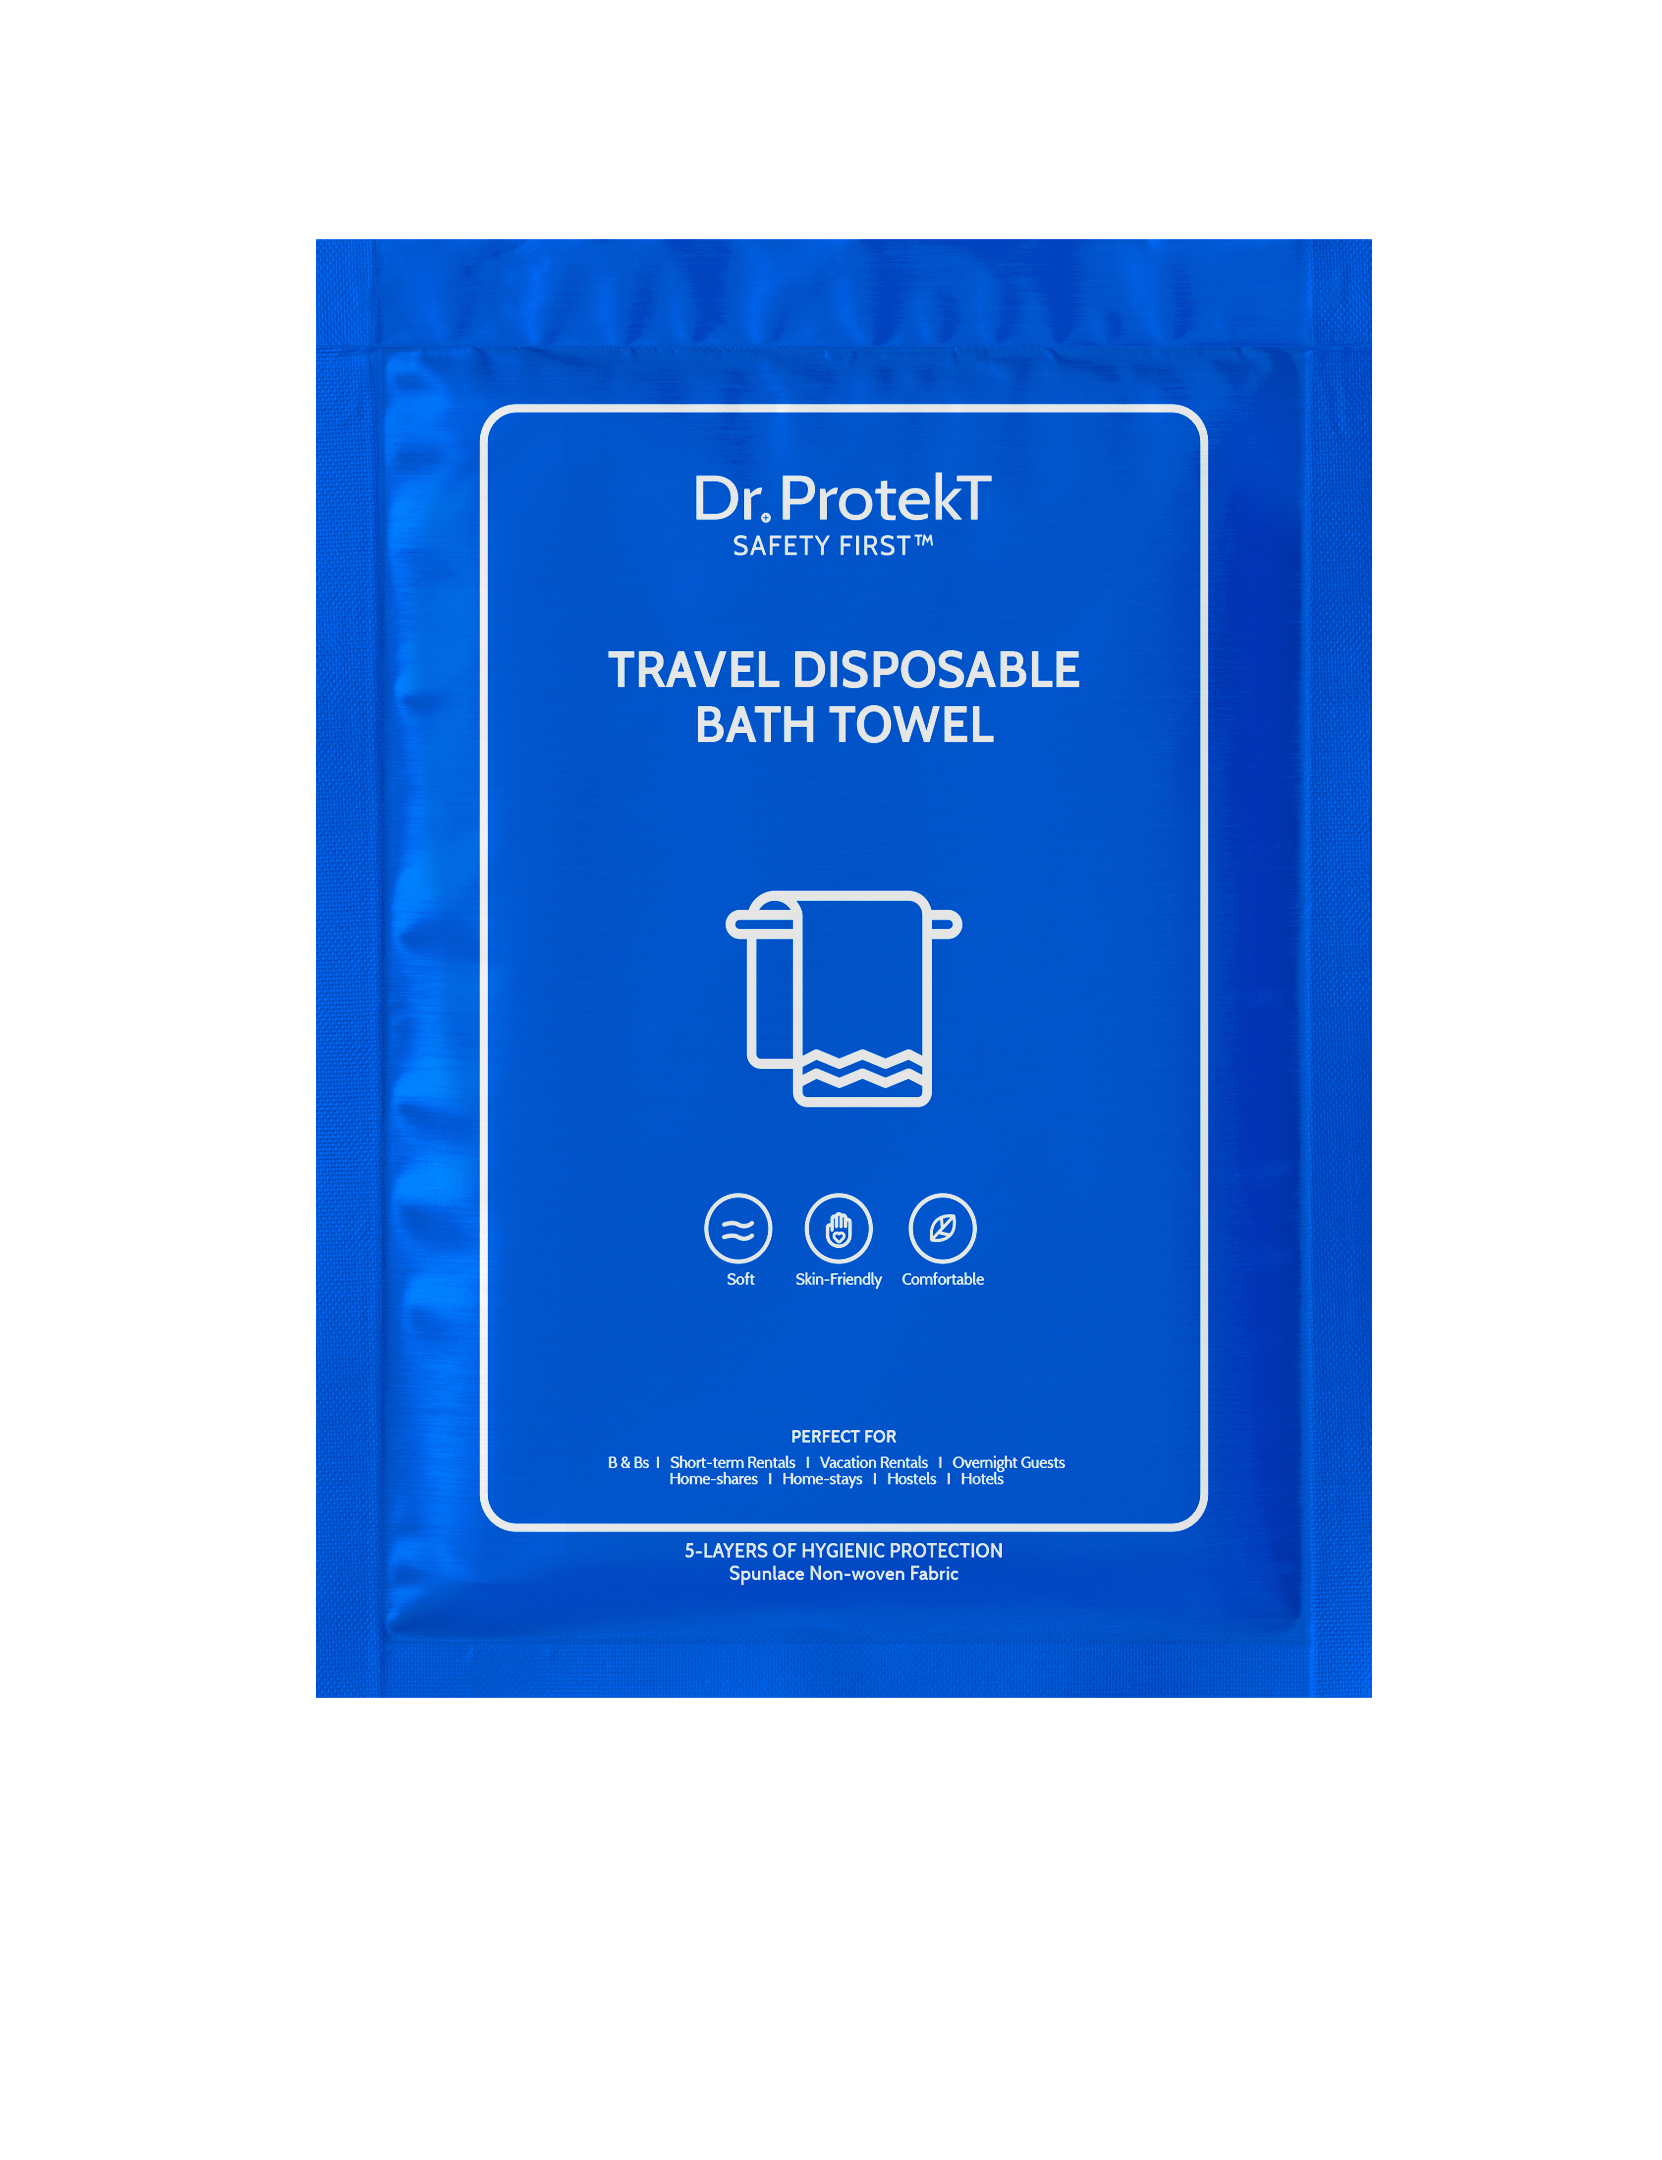 TRAVEL DISPOSABLE BATH TOWEL